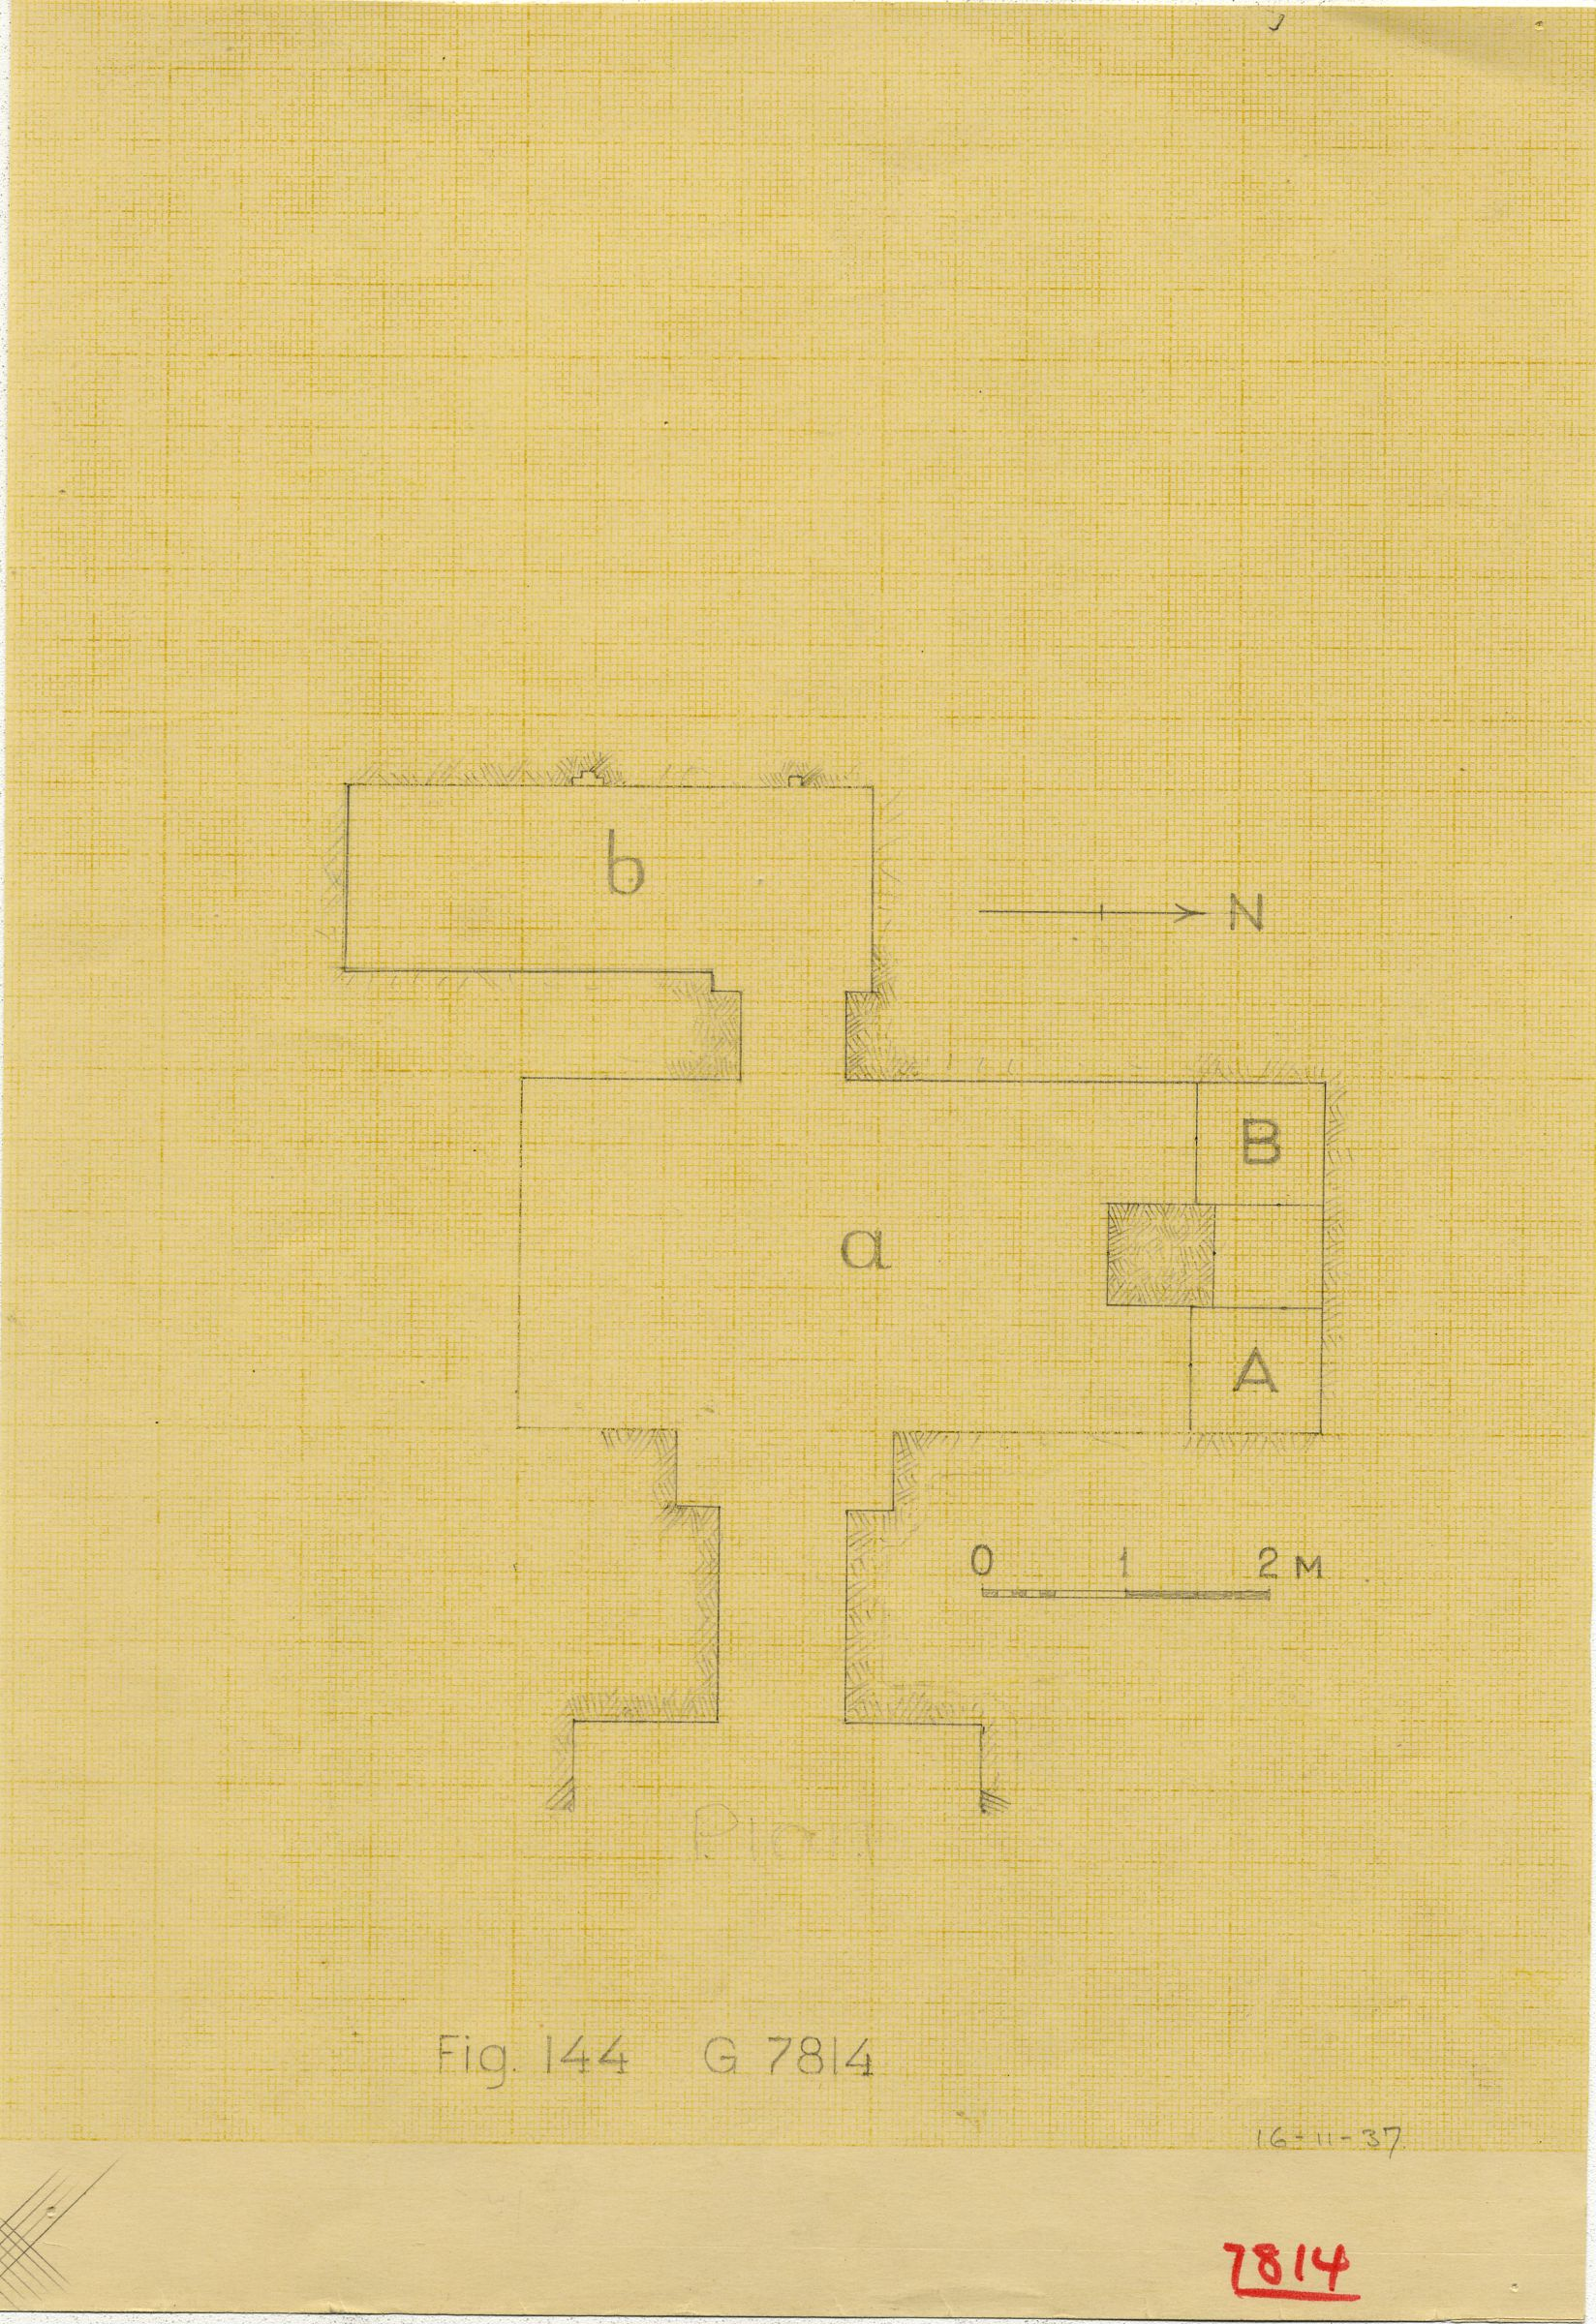 Maps and plans: G 7814, Plan of chapel, with shafts A and B